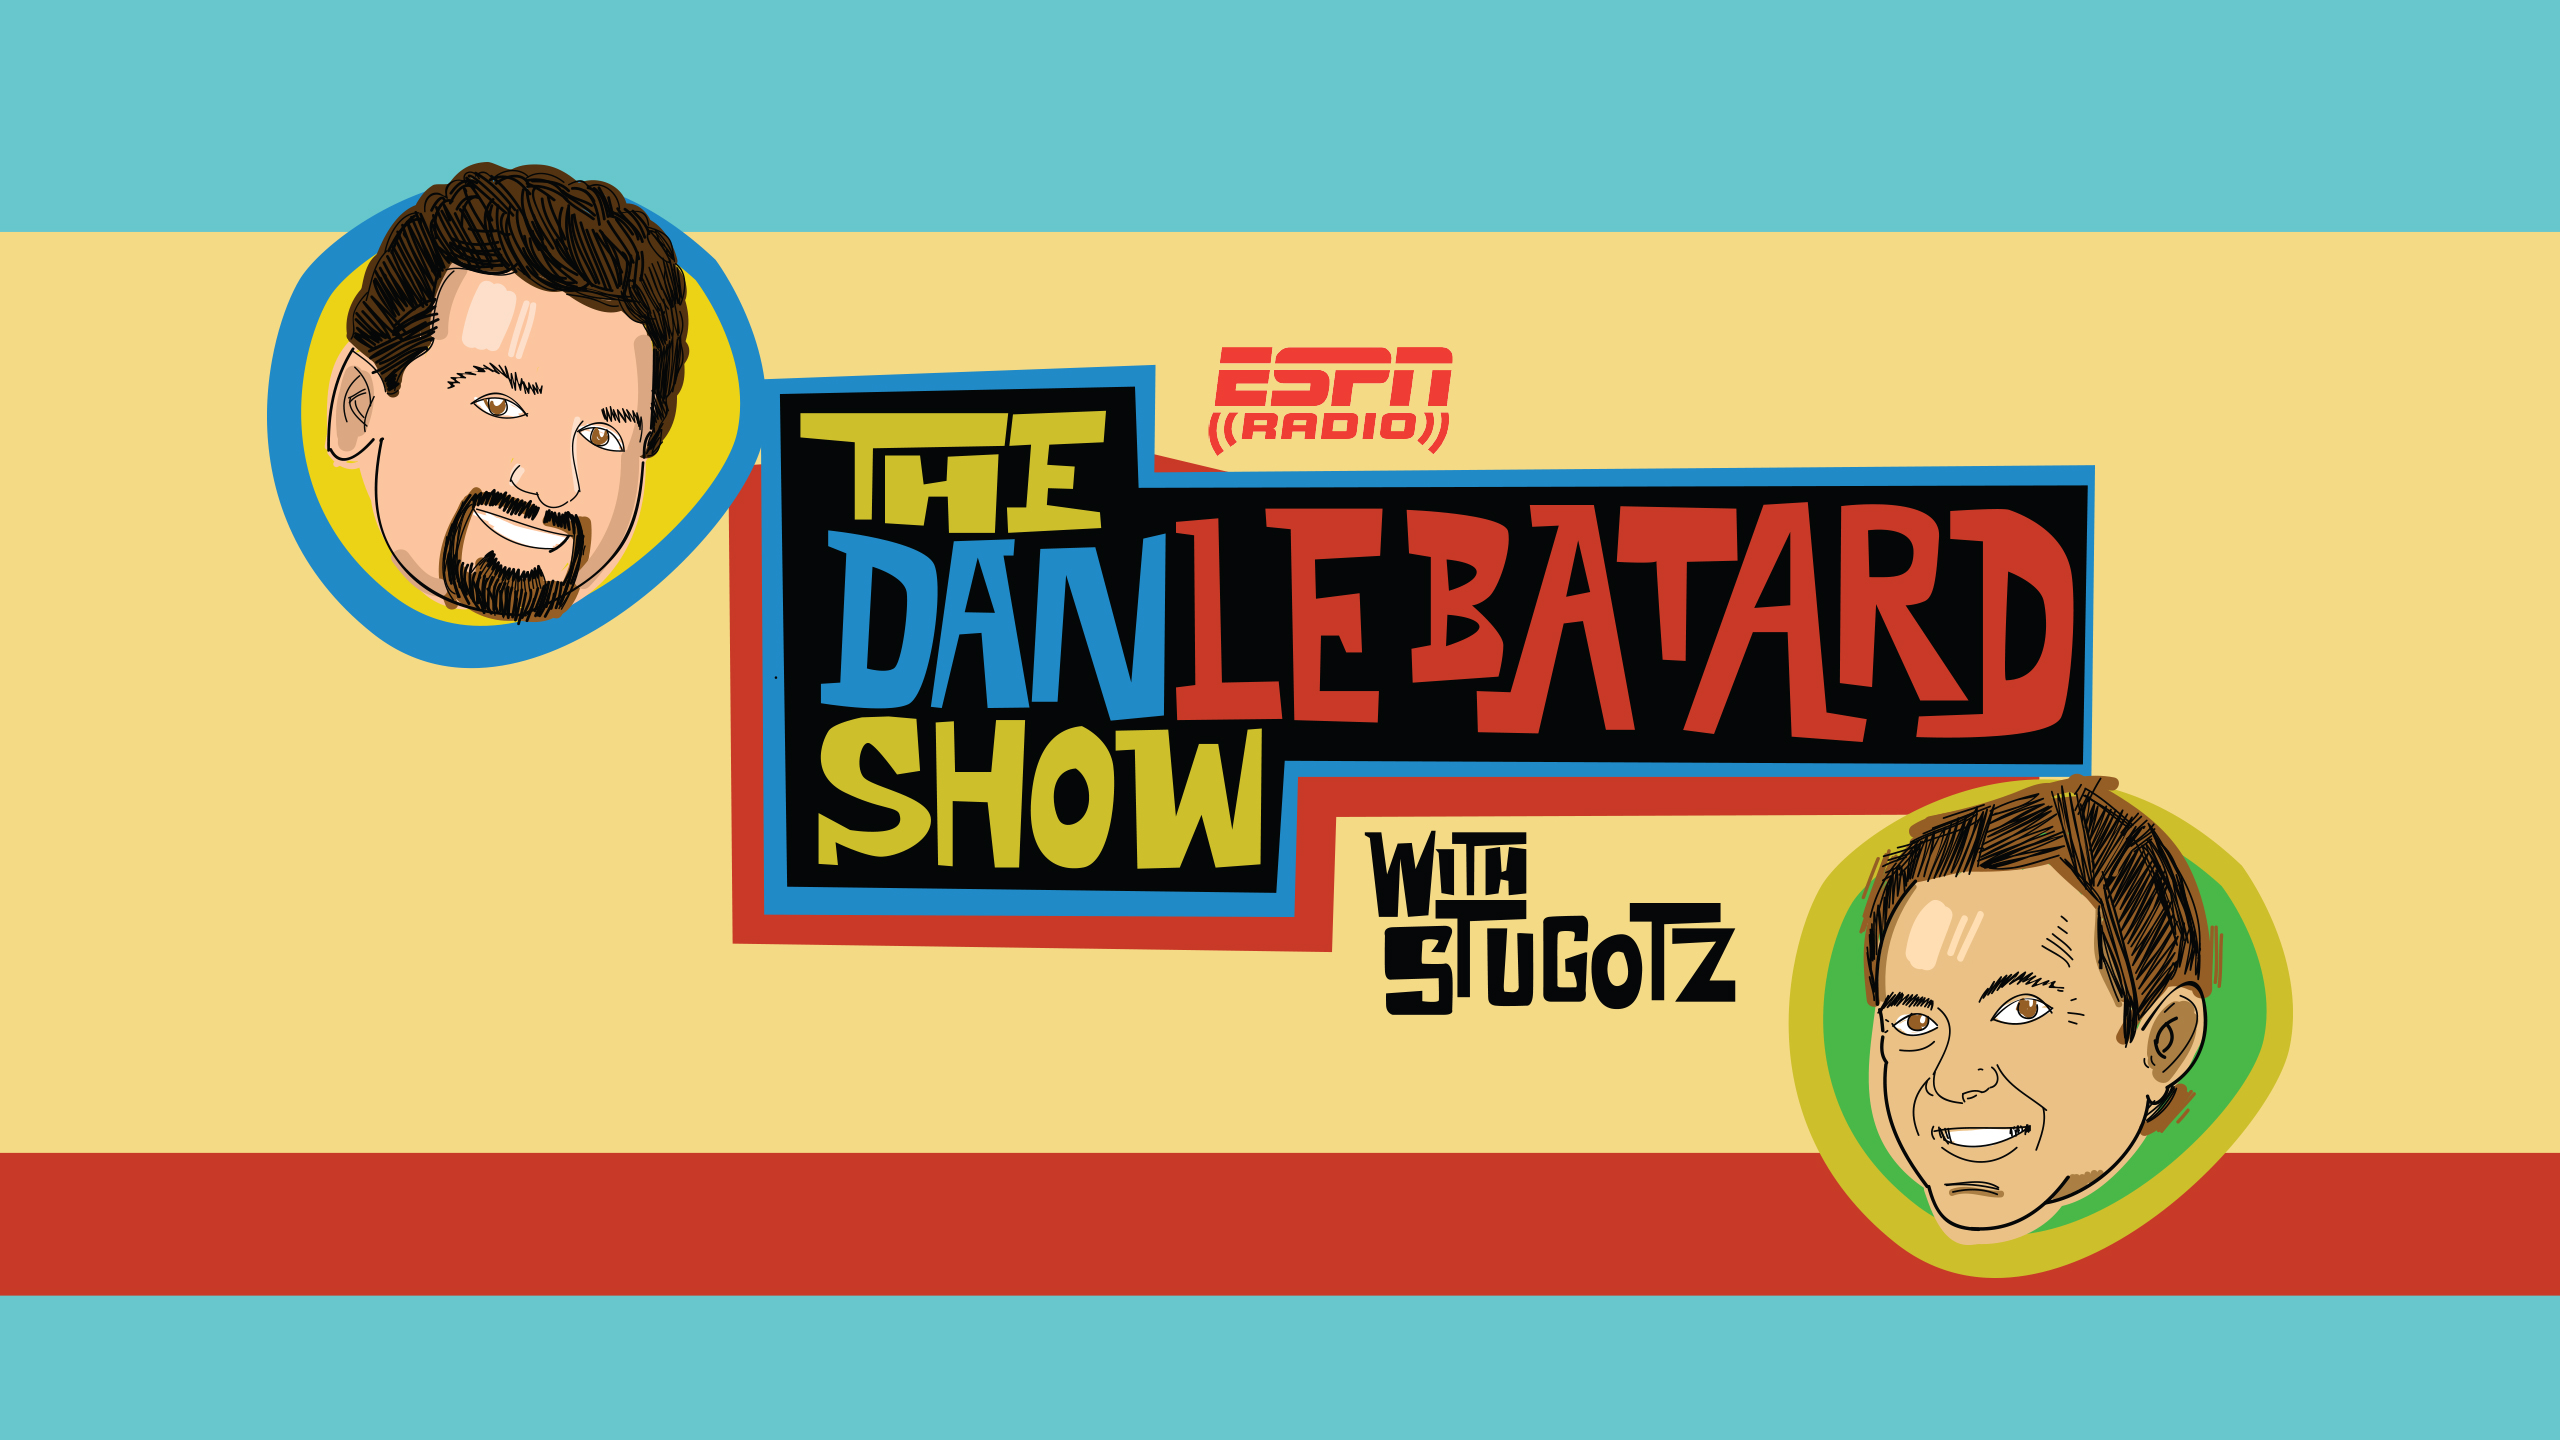 Fri, 12/14 - The Dan Le Batard Show with Stugotz Presented by Progressive